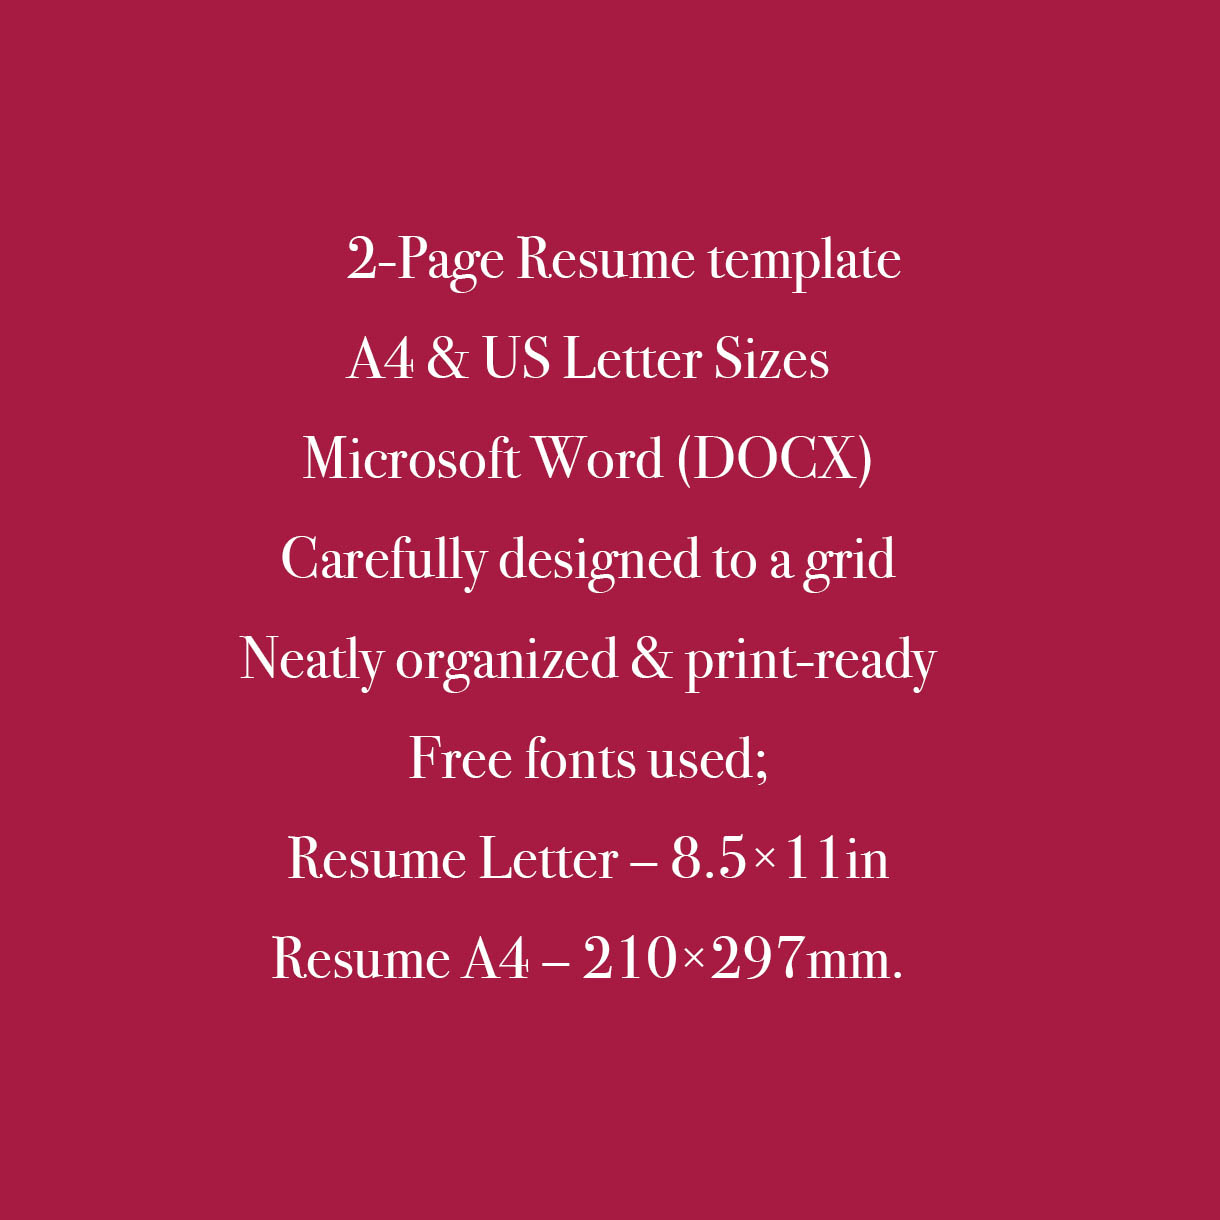 Art Director Resume Template CV preview image.